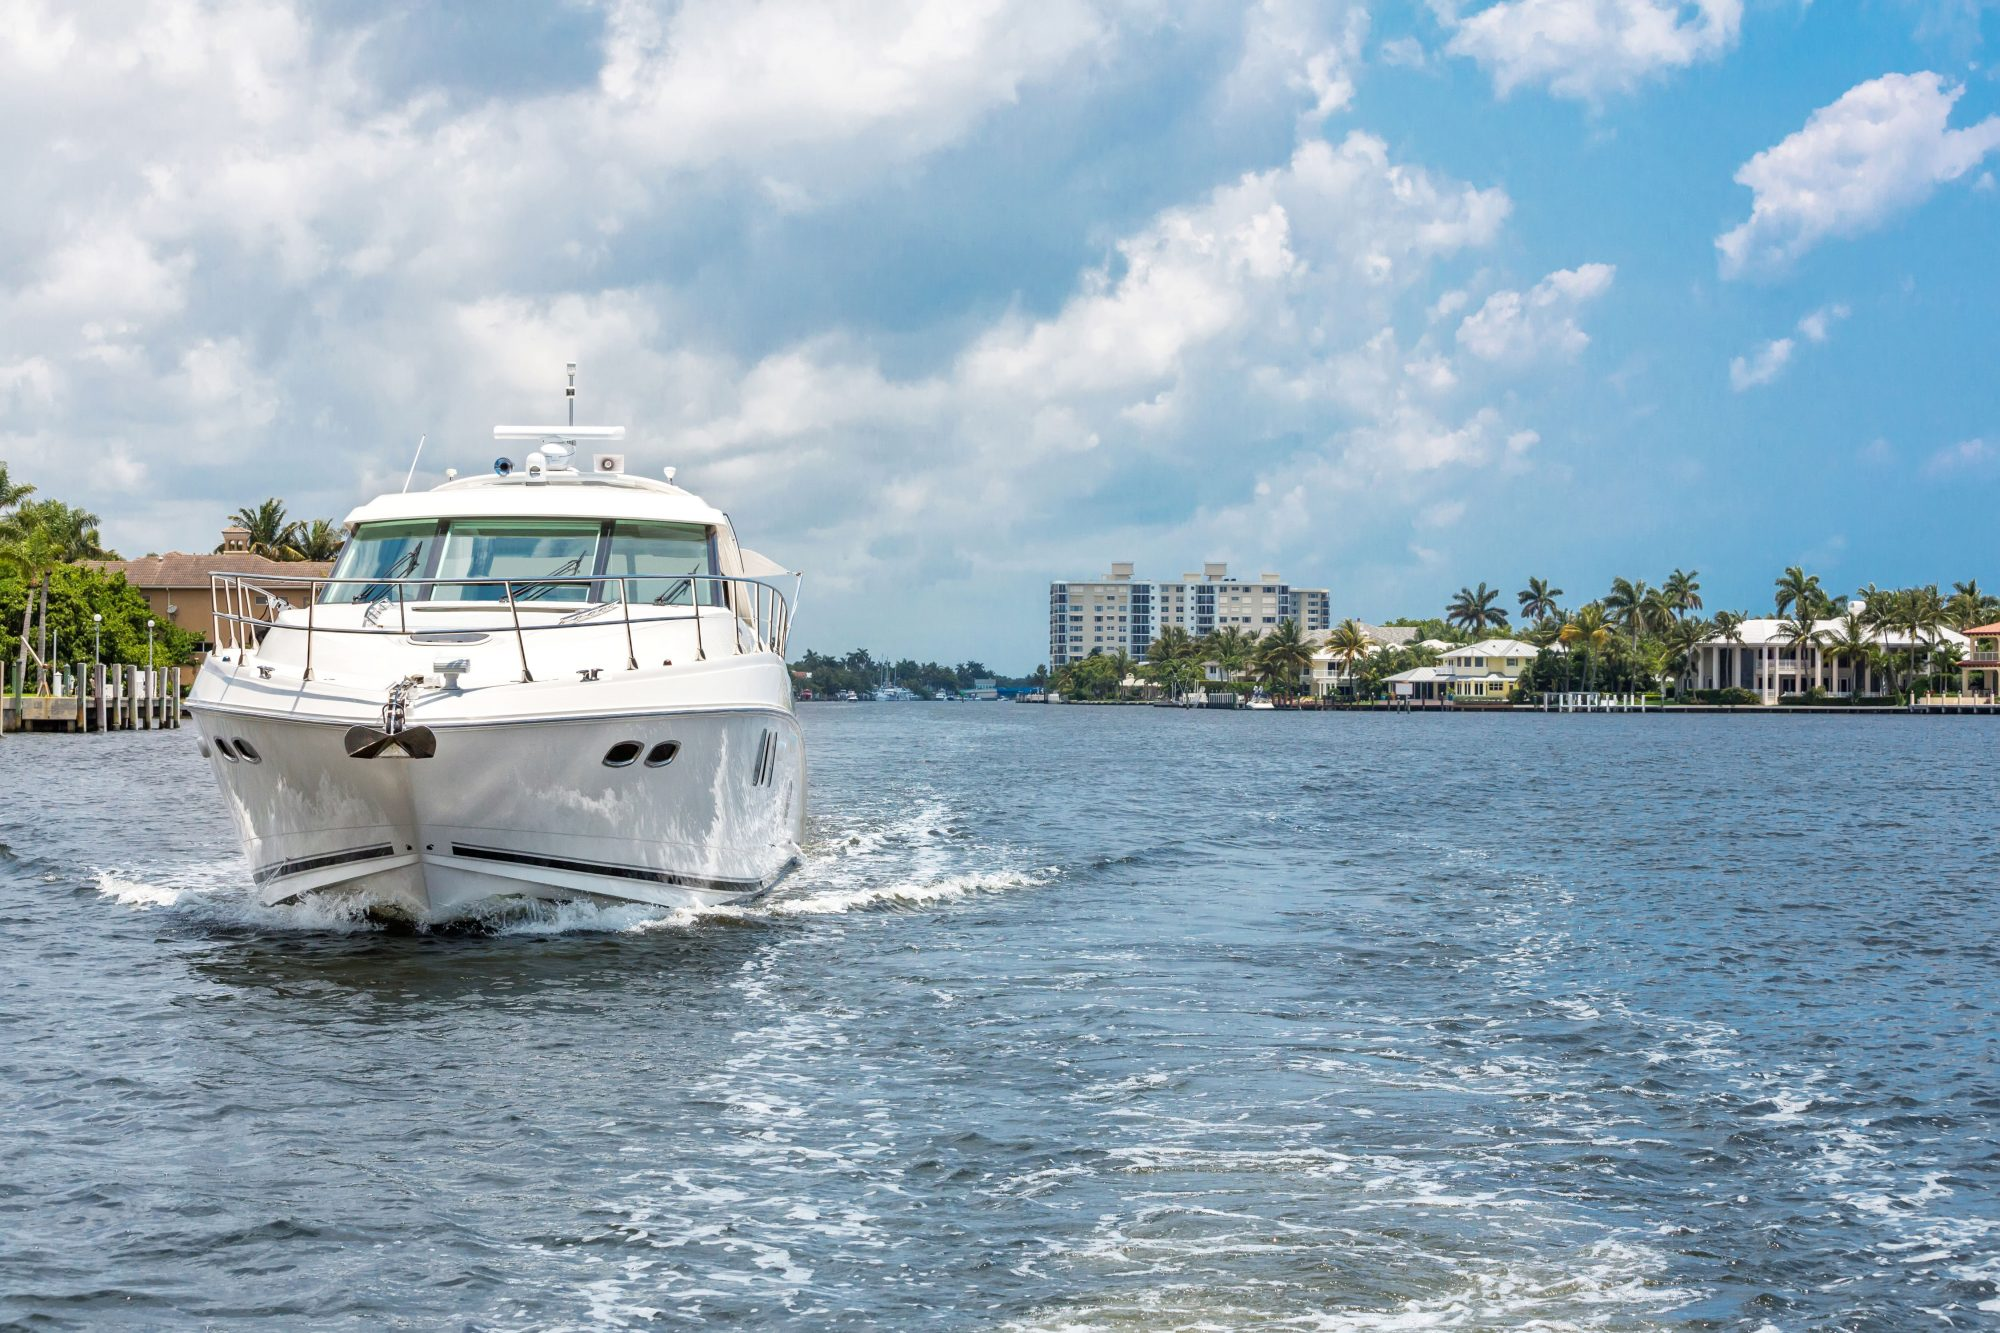 A large boat moves along the Florida Intracoastal Waterway.